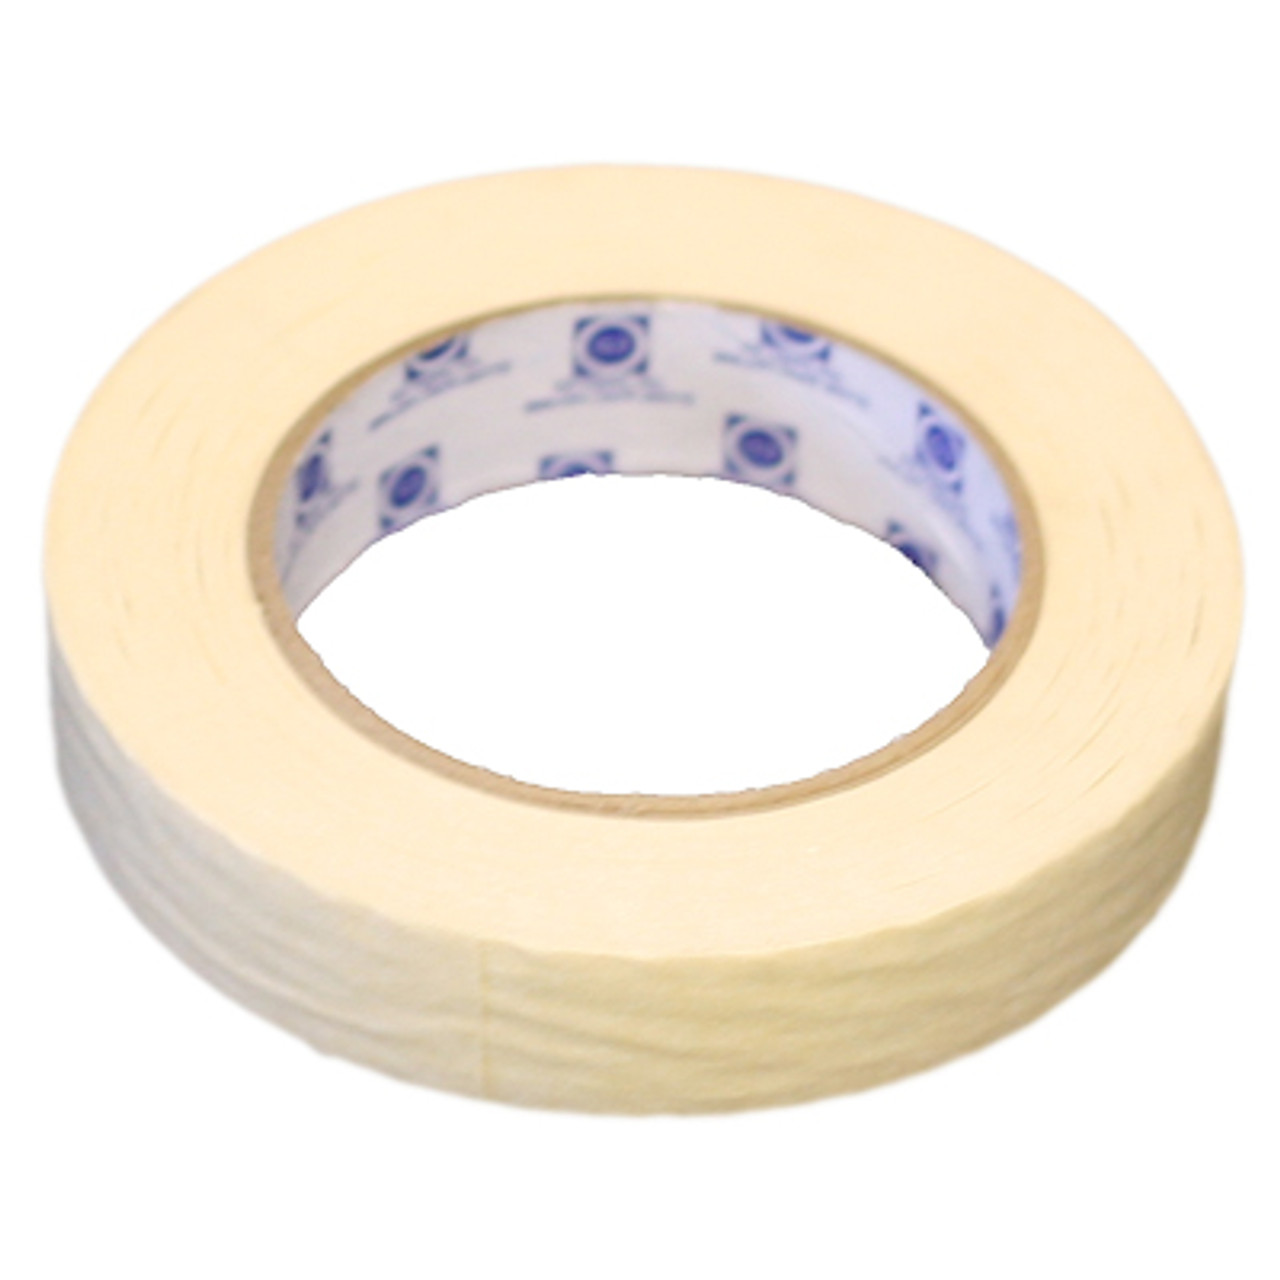 "Natural Painters Grade Masking Tape 1""x50m (48 Roll Case / $1.39 Per Roll)"